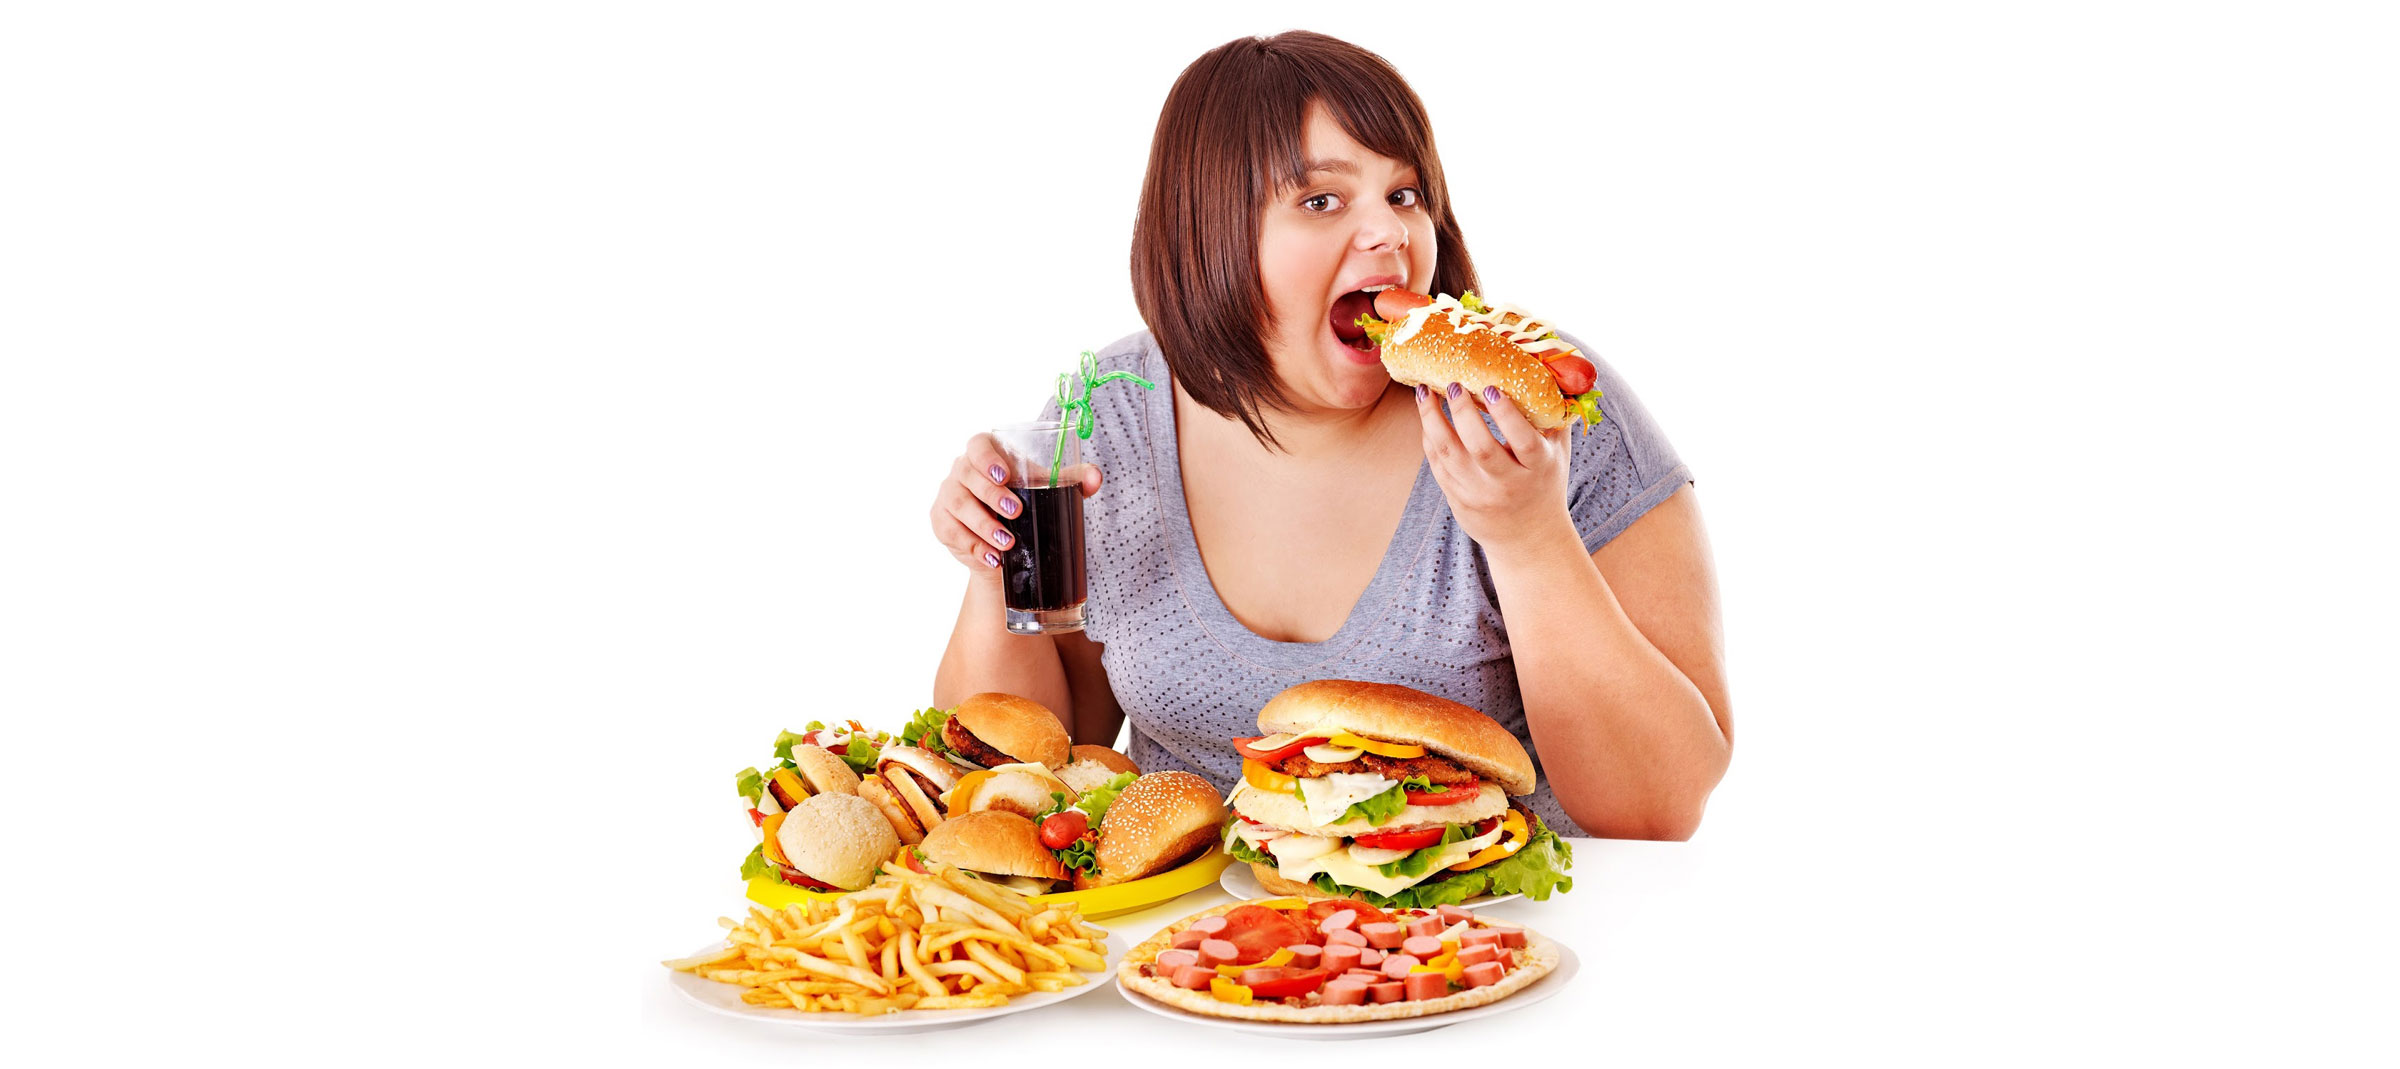 What Happens to Your Body During Cyclic Overeating